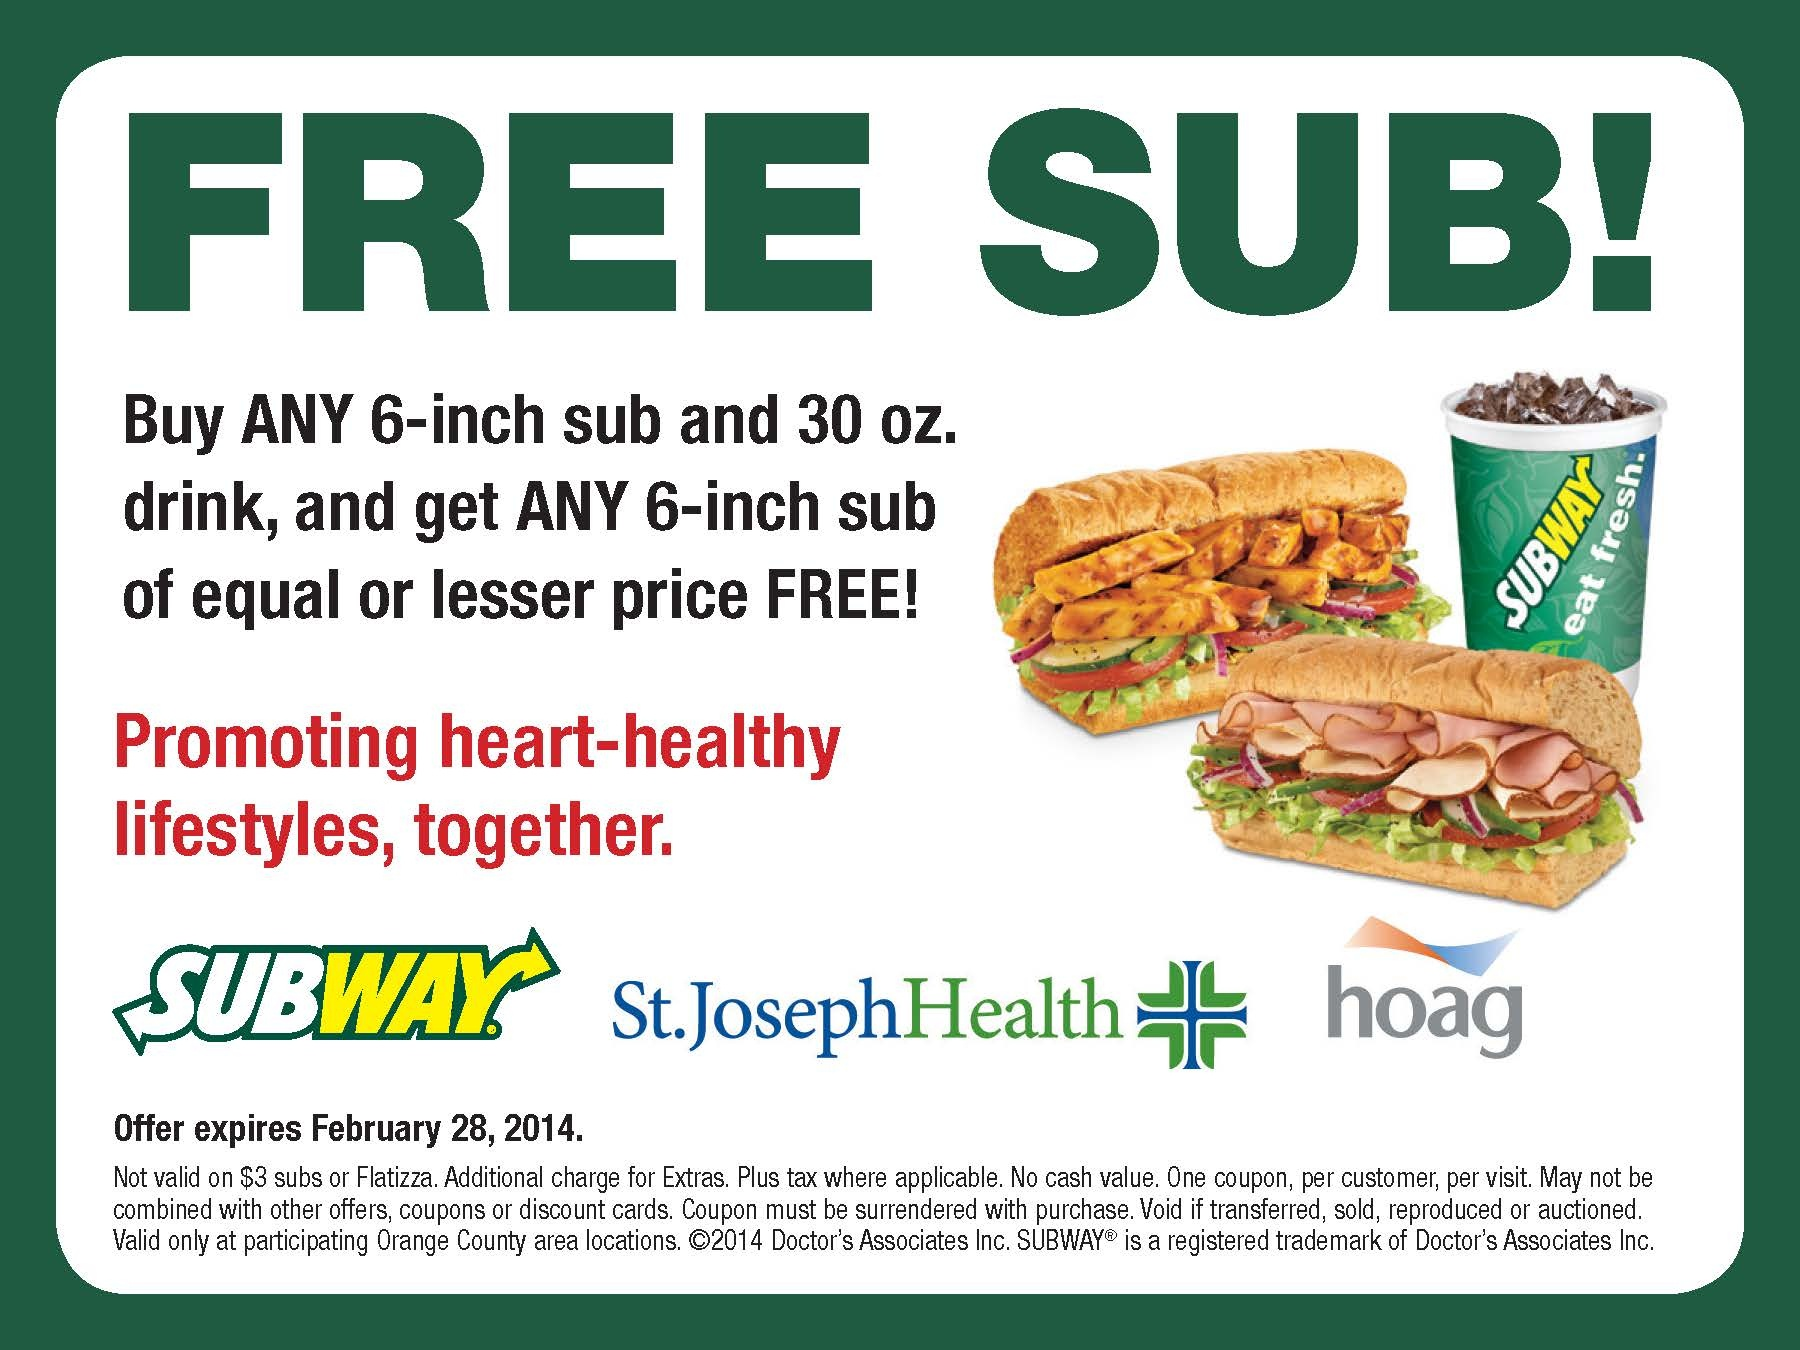 St. Joseph Hoag Subway Coupon – Printable Coupons Online - Free Printable Subway Coupons 2017